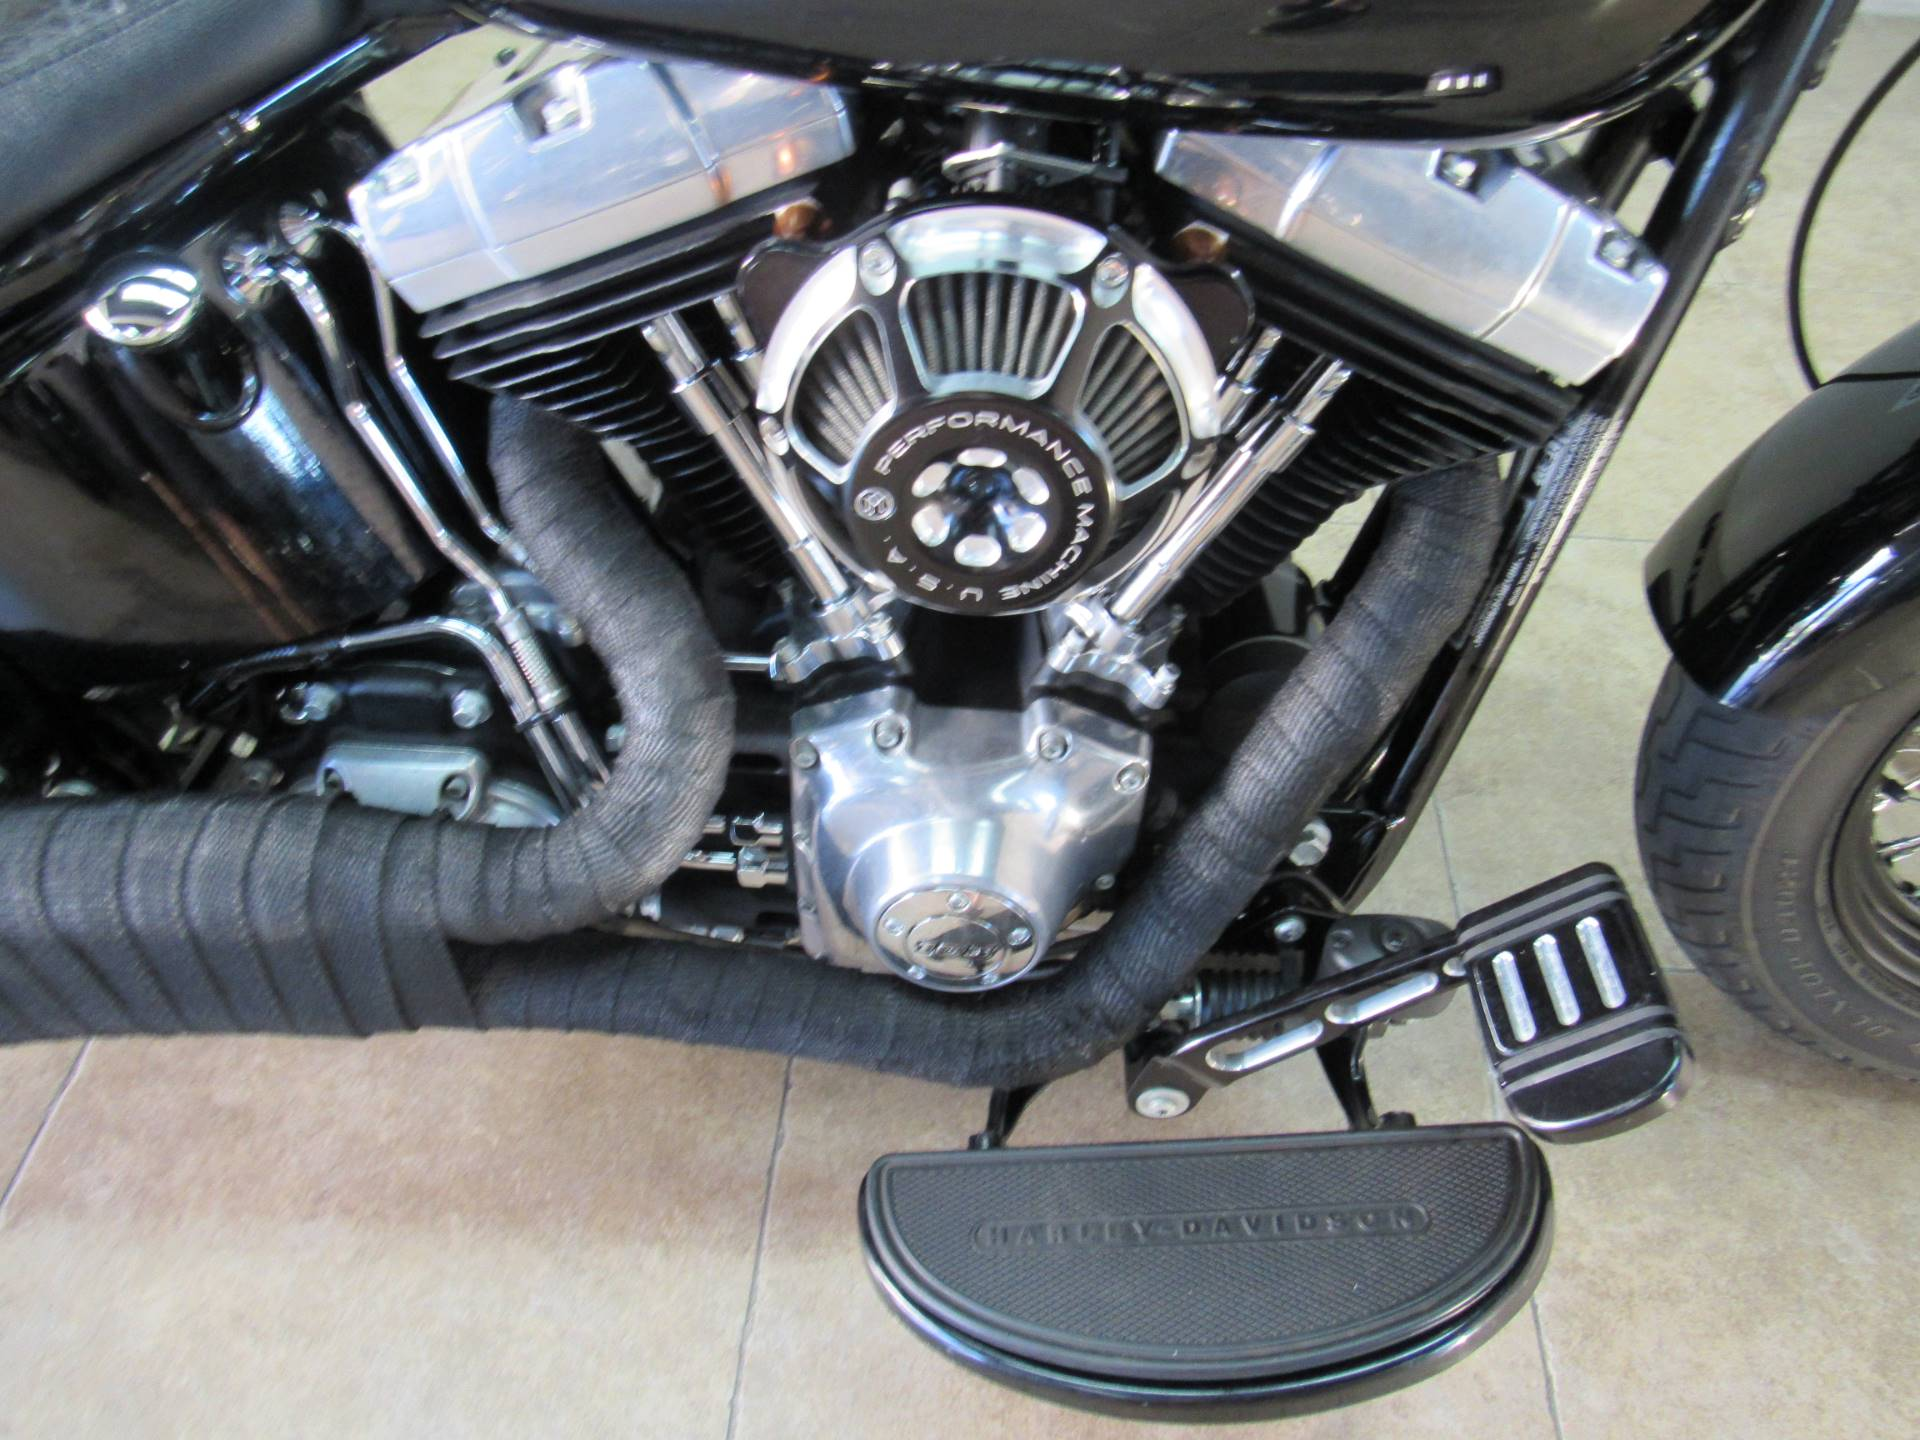 2015 Harley-Davidson Softail Slim® in Temecula, California - Photo 7